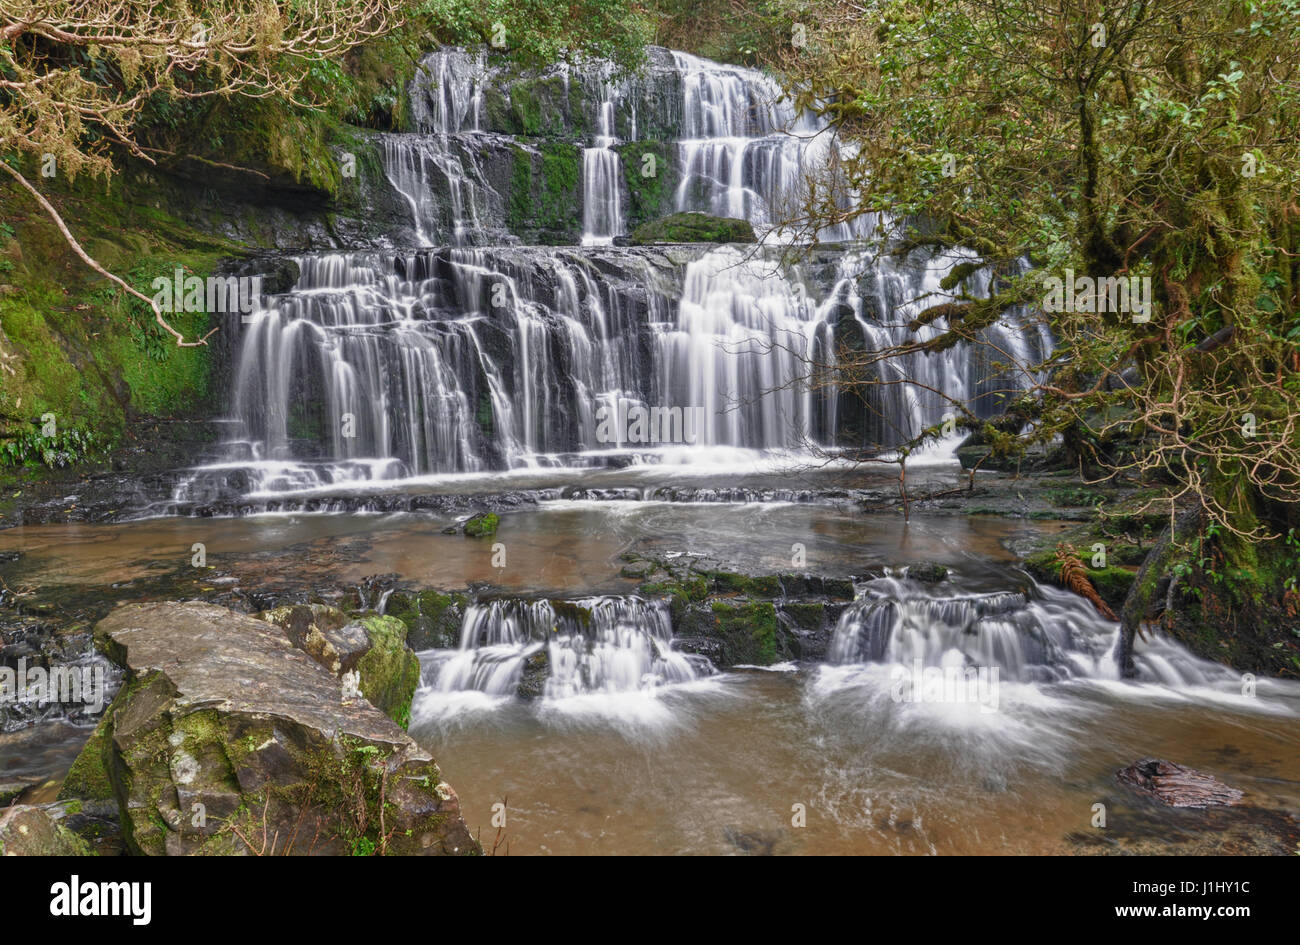 The majestic Purakaunui Falls in The Catlins, the Southern Scenic Route in New Zealand - Stock Image